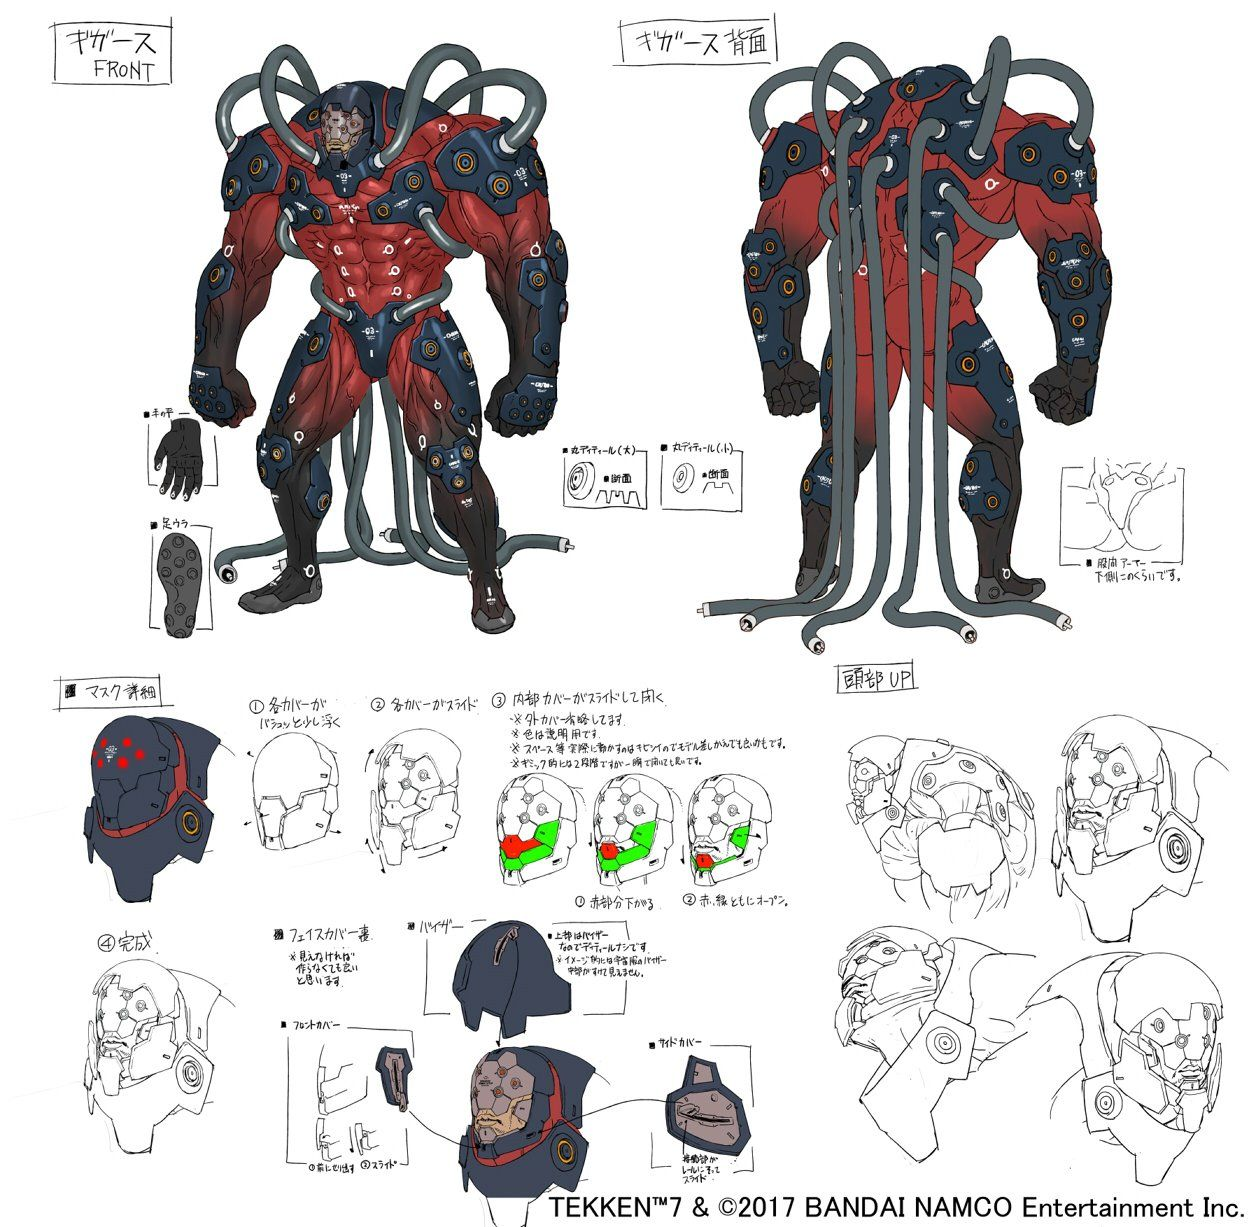 Gigas Tekken7 Concept Artwork Extra Jpg 1249 1227 Character Design Game Character Design Jim Lee Art